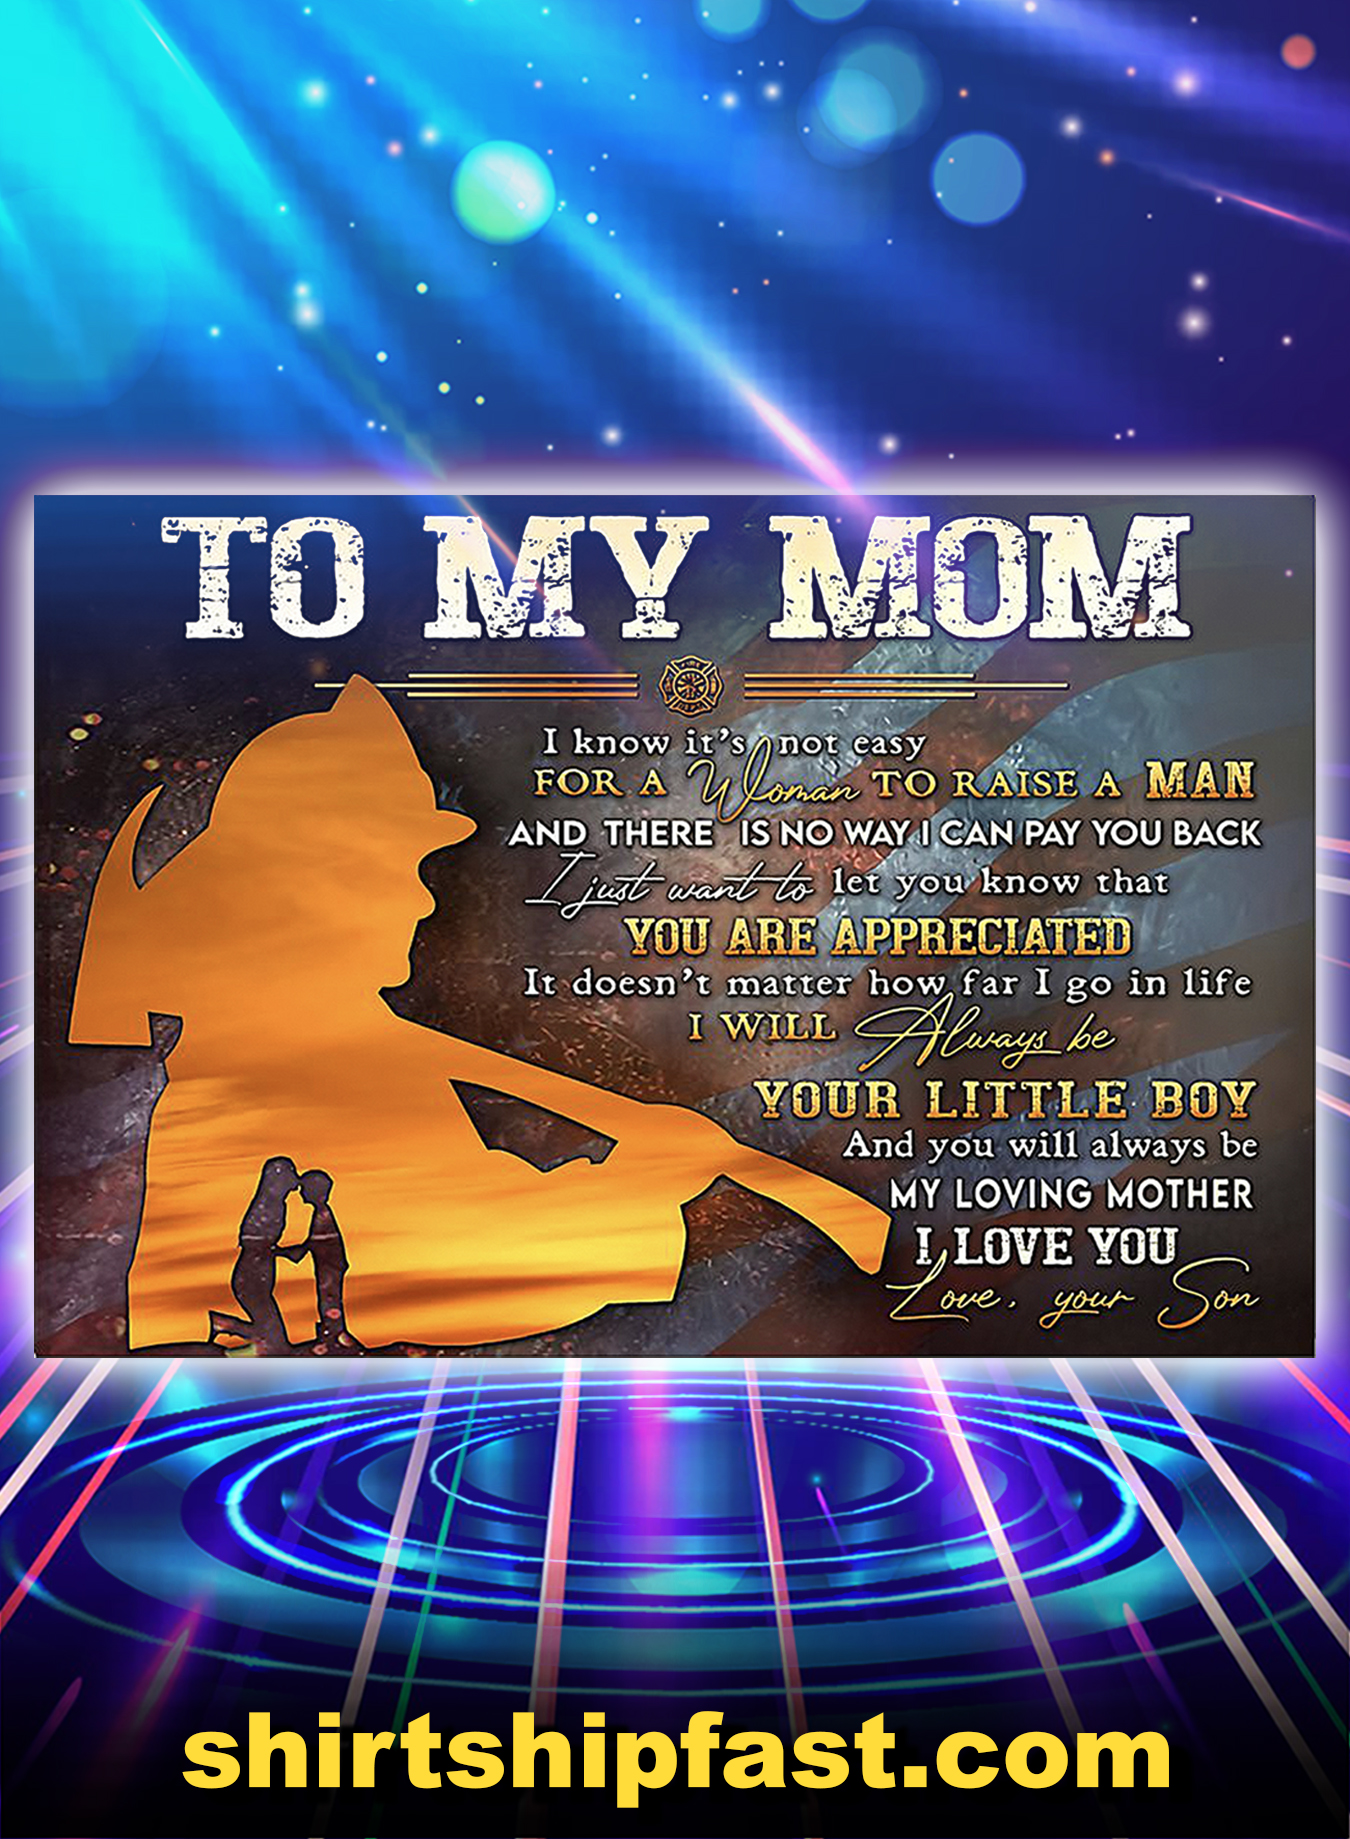 Firefighter to my mom love your son poster - A3